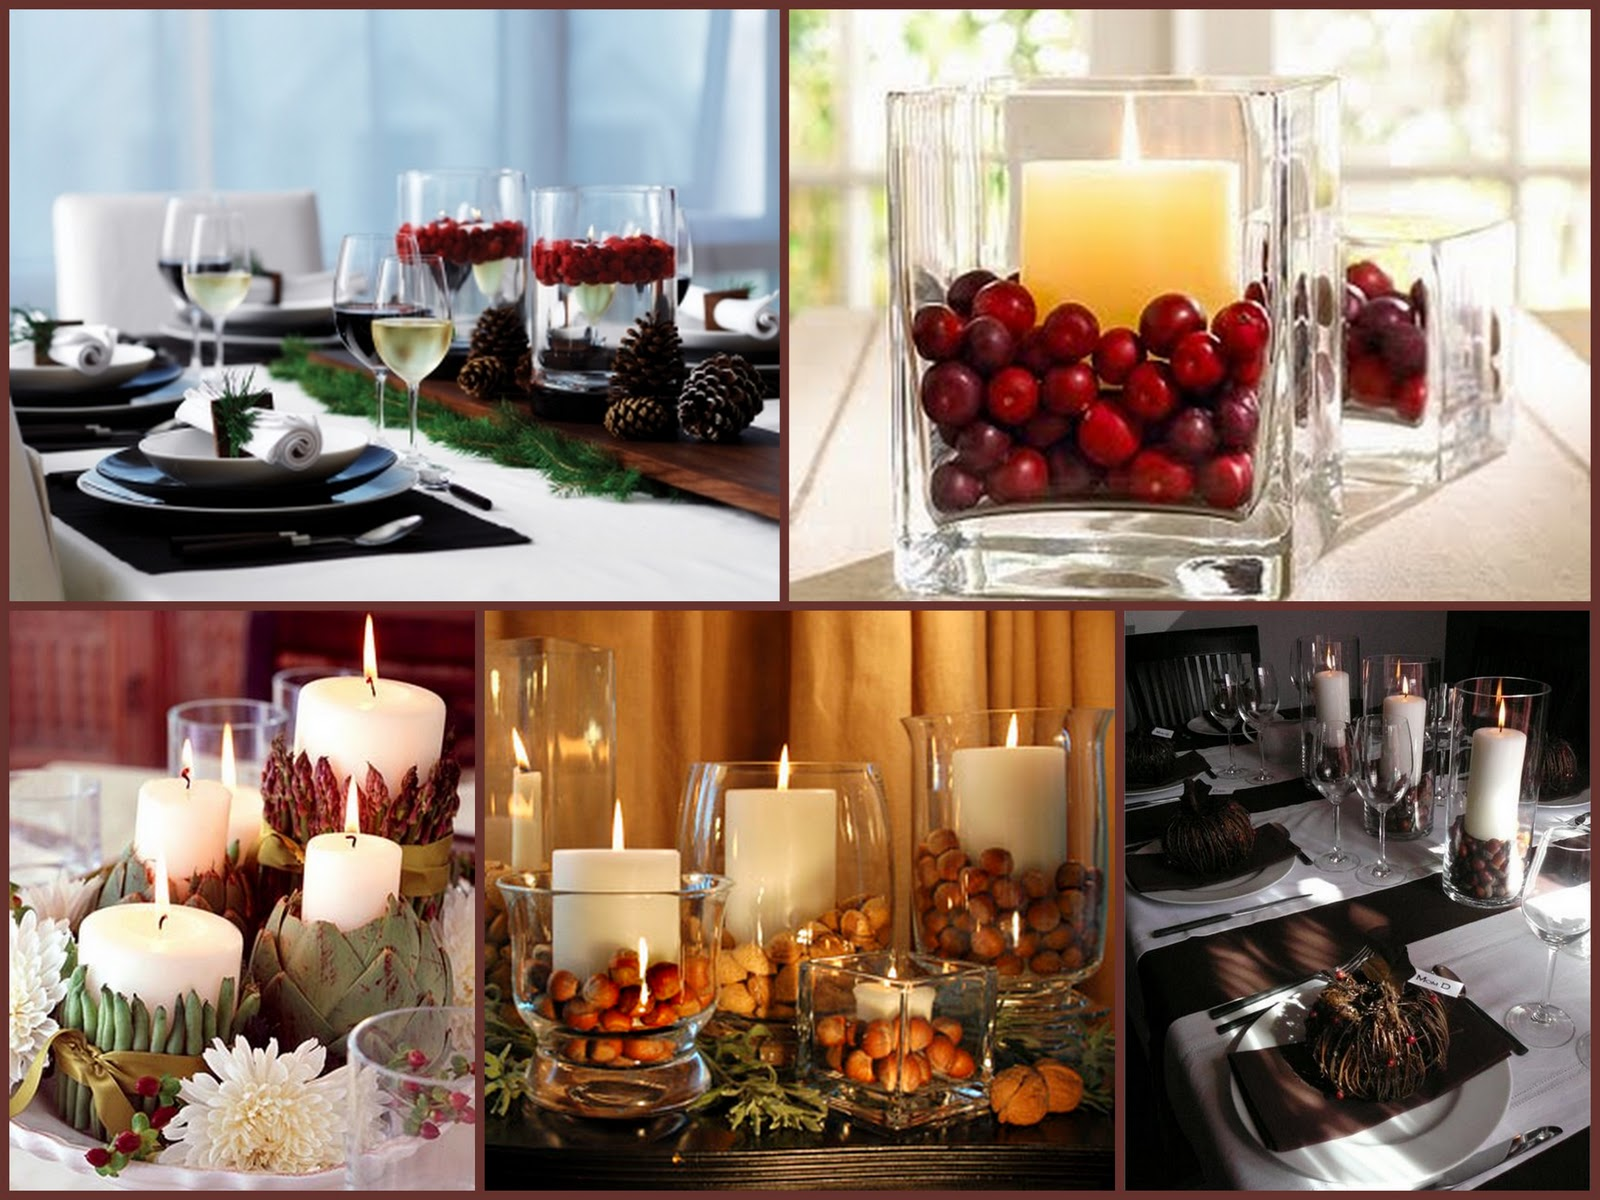 Trendee flowers designs diy candle centerpiece decor for Thanksgiving centerpieces with candles